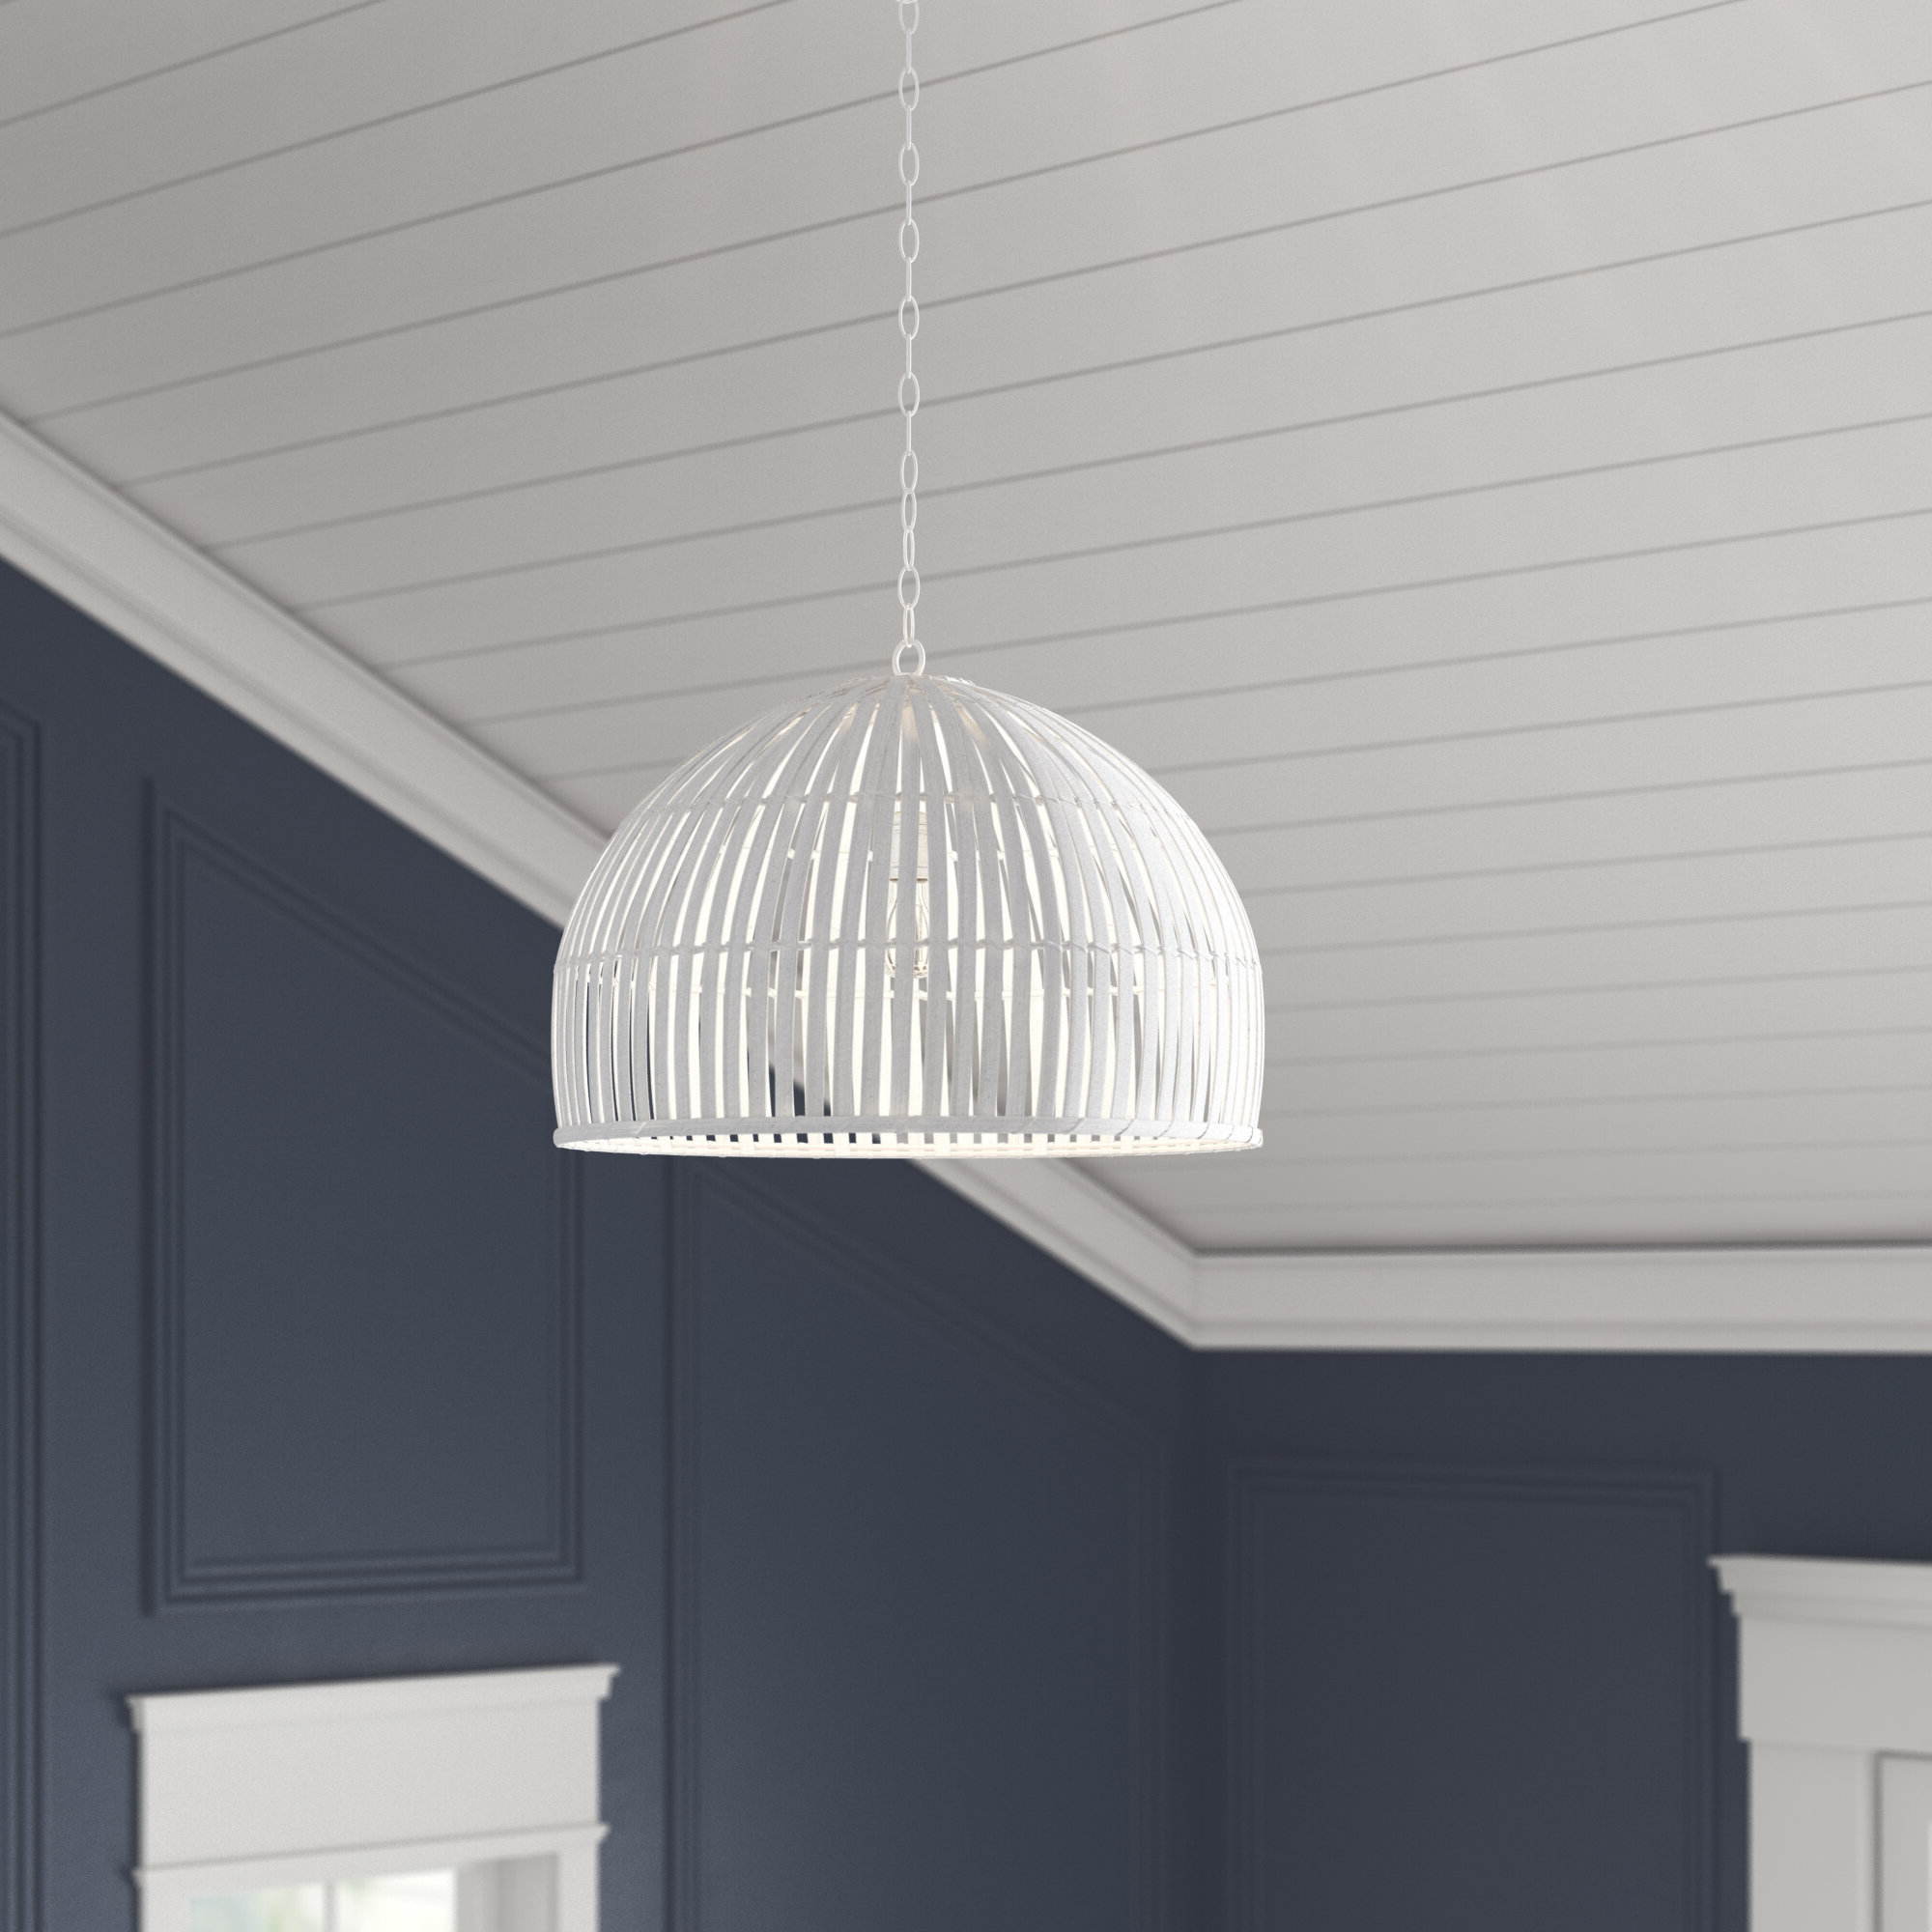 Delmore 1 Light Dome Pendant With Newest Abernathy 1 Light Dome Pendants (View 10 of 25)